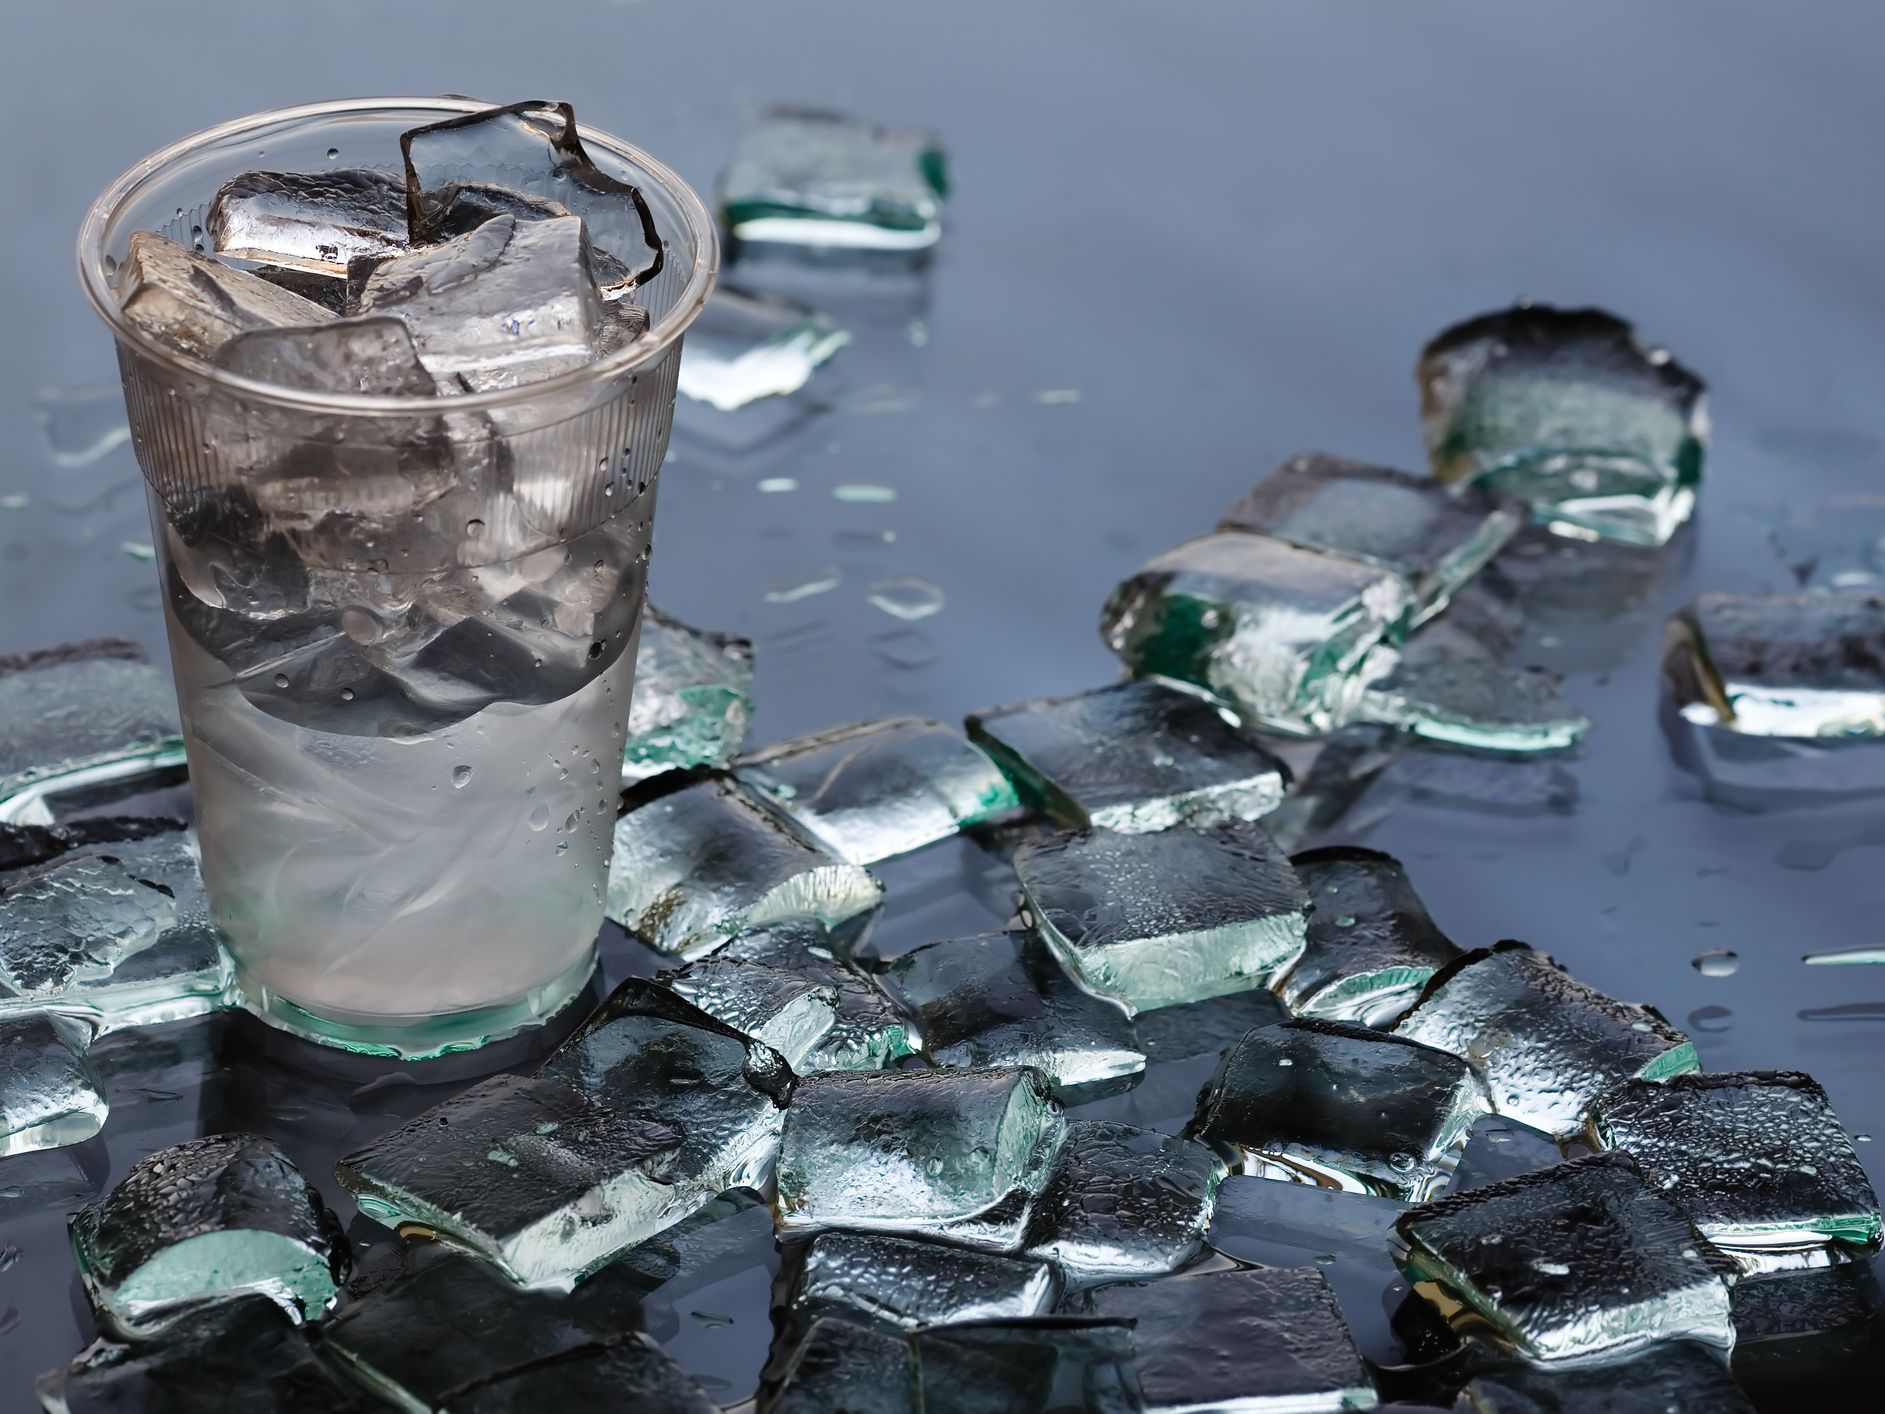 Do Ice Cubes Melt Faster In Water Or Air